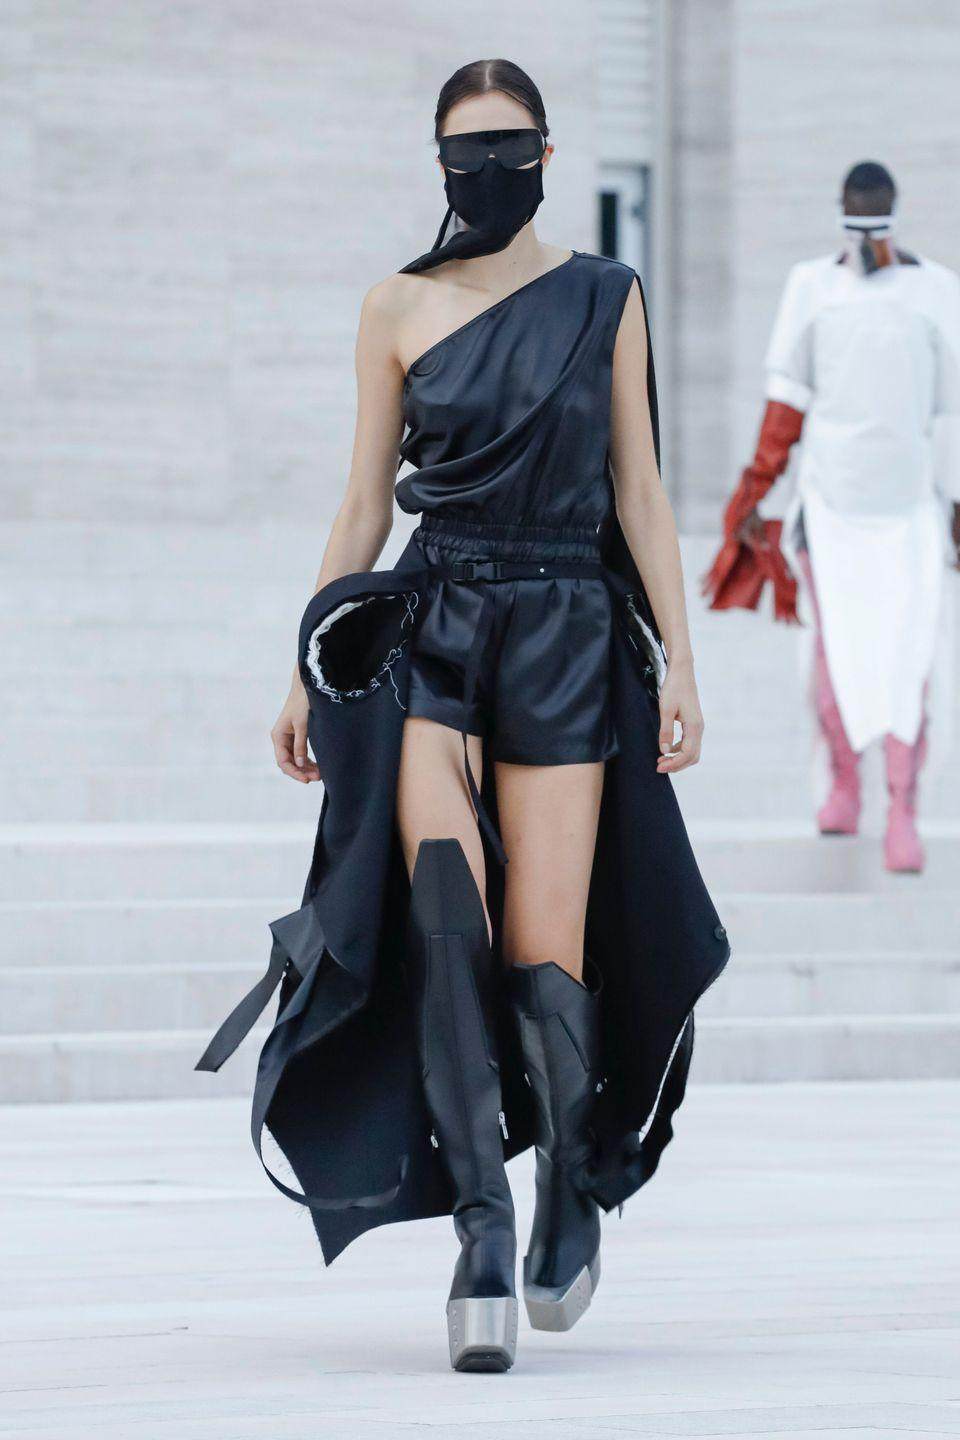 <p>Rick Owens's spring 2021 show reached mythic proportions in more ways than one. He titled the collection Phlegethon after one of the five rivers of the Underworld in Greek mythology (and the river of blood in Dante's <em>Divine Comedy</em>)<em>.</em> And his lineup of tops and capes with linebacker shoulders; rigid, cocoon-like ponchos; and thigh-high platform leather boots was a showcase of sartorial exaggeration. It conveyed a sense of hell on earth, the Twilight of the Gods—or in this case, of humanity. Indeed, Owens is no stranger to postapocalyptic ideas (darkness, in both the literal and figurative sense, is embedded in his brand), and in the era of COVID-19, this dystopian display felt reflective of our times. To wit: Every look featured a face mask. —<em>Barry Samaha</em></p>